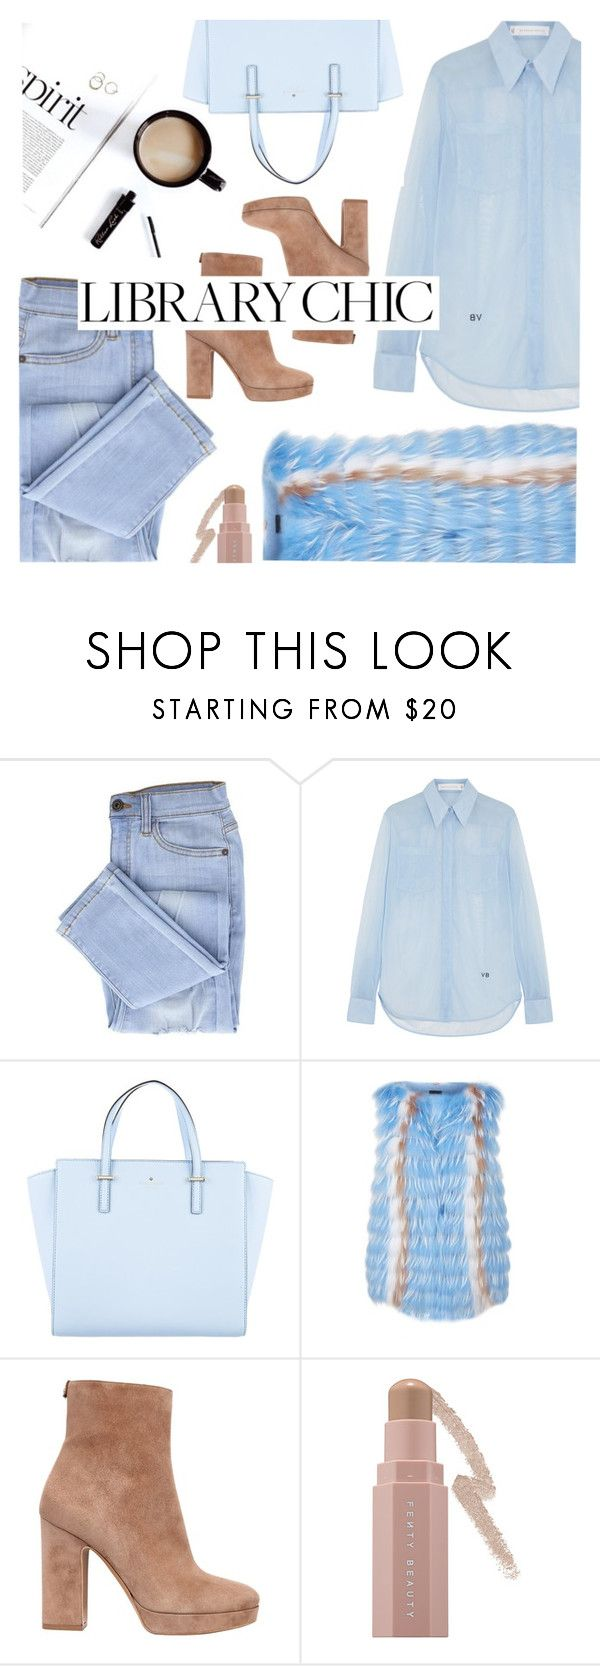 """""""Just Chilled"""" by pollyphalatse ❤ liked on Polyvore featuring Victoria Beckham, Kate Spade, Sportalm, Salvatore Ferragamo and Sephora Collection"""